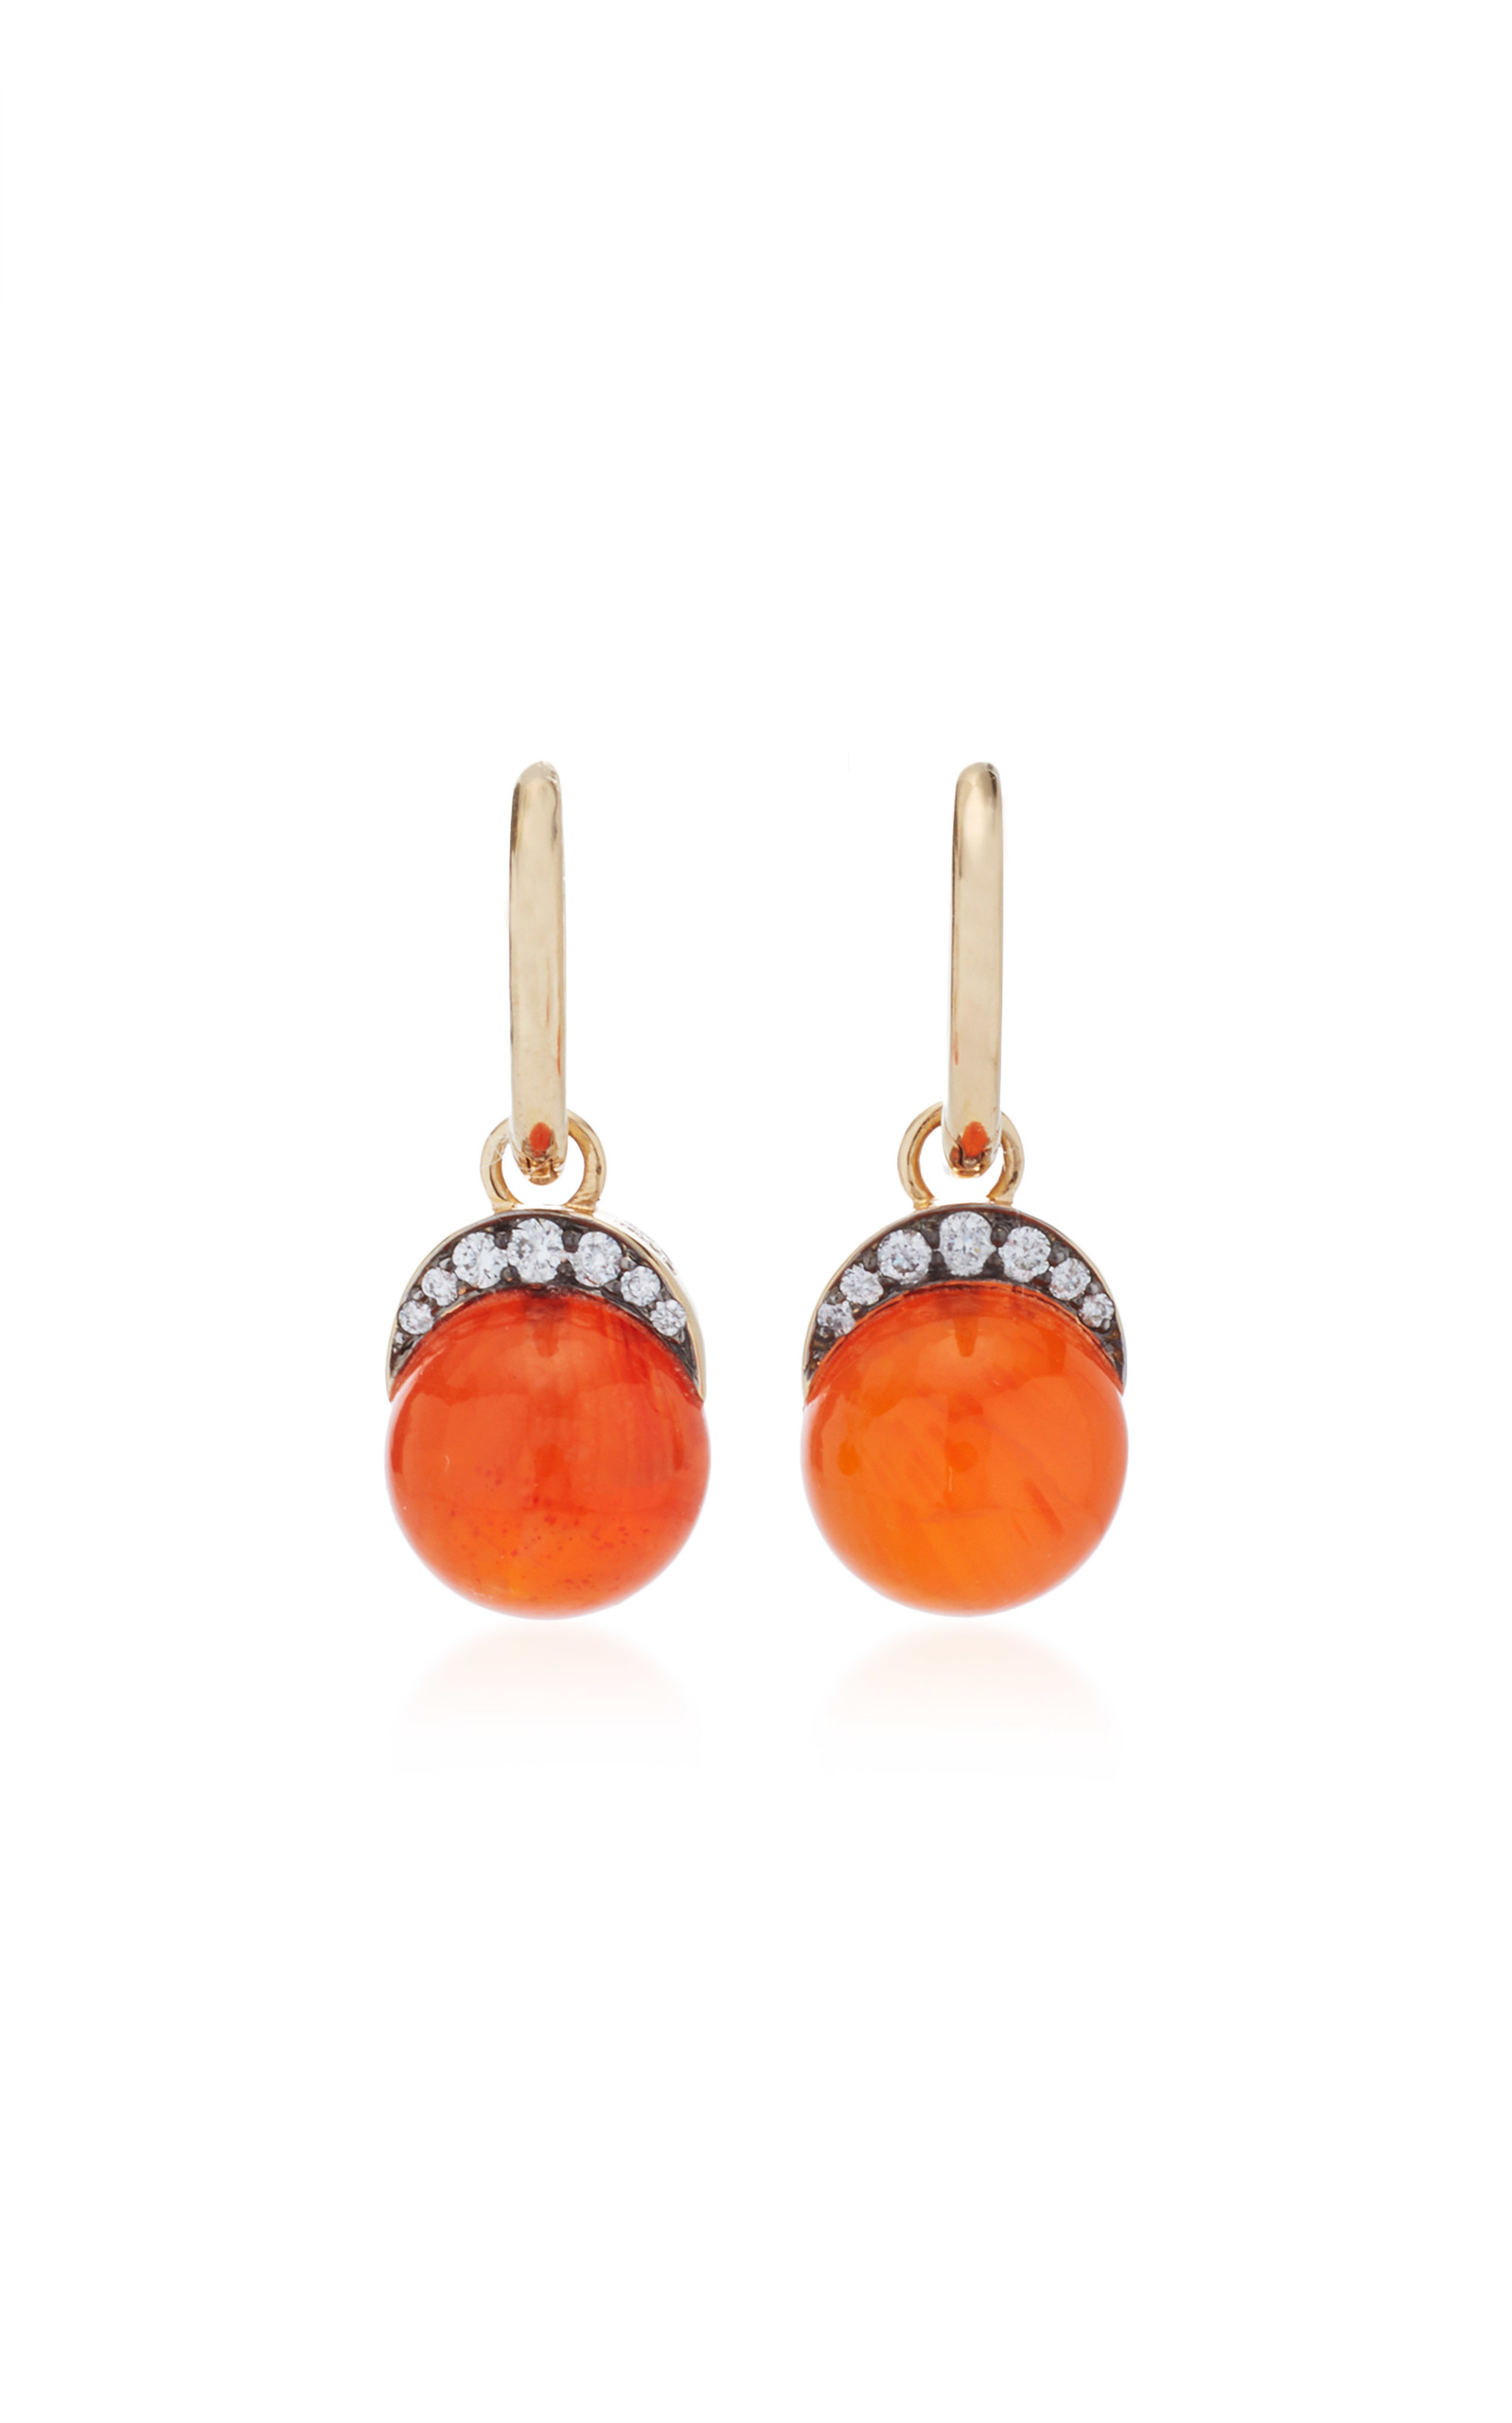 arpels cleef van carnelian brands vintage alhambra earrings duplicate sold fine jewellery